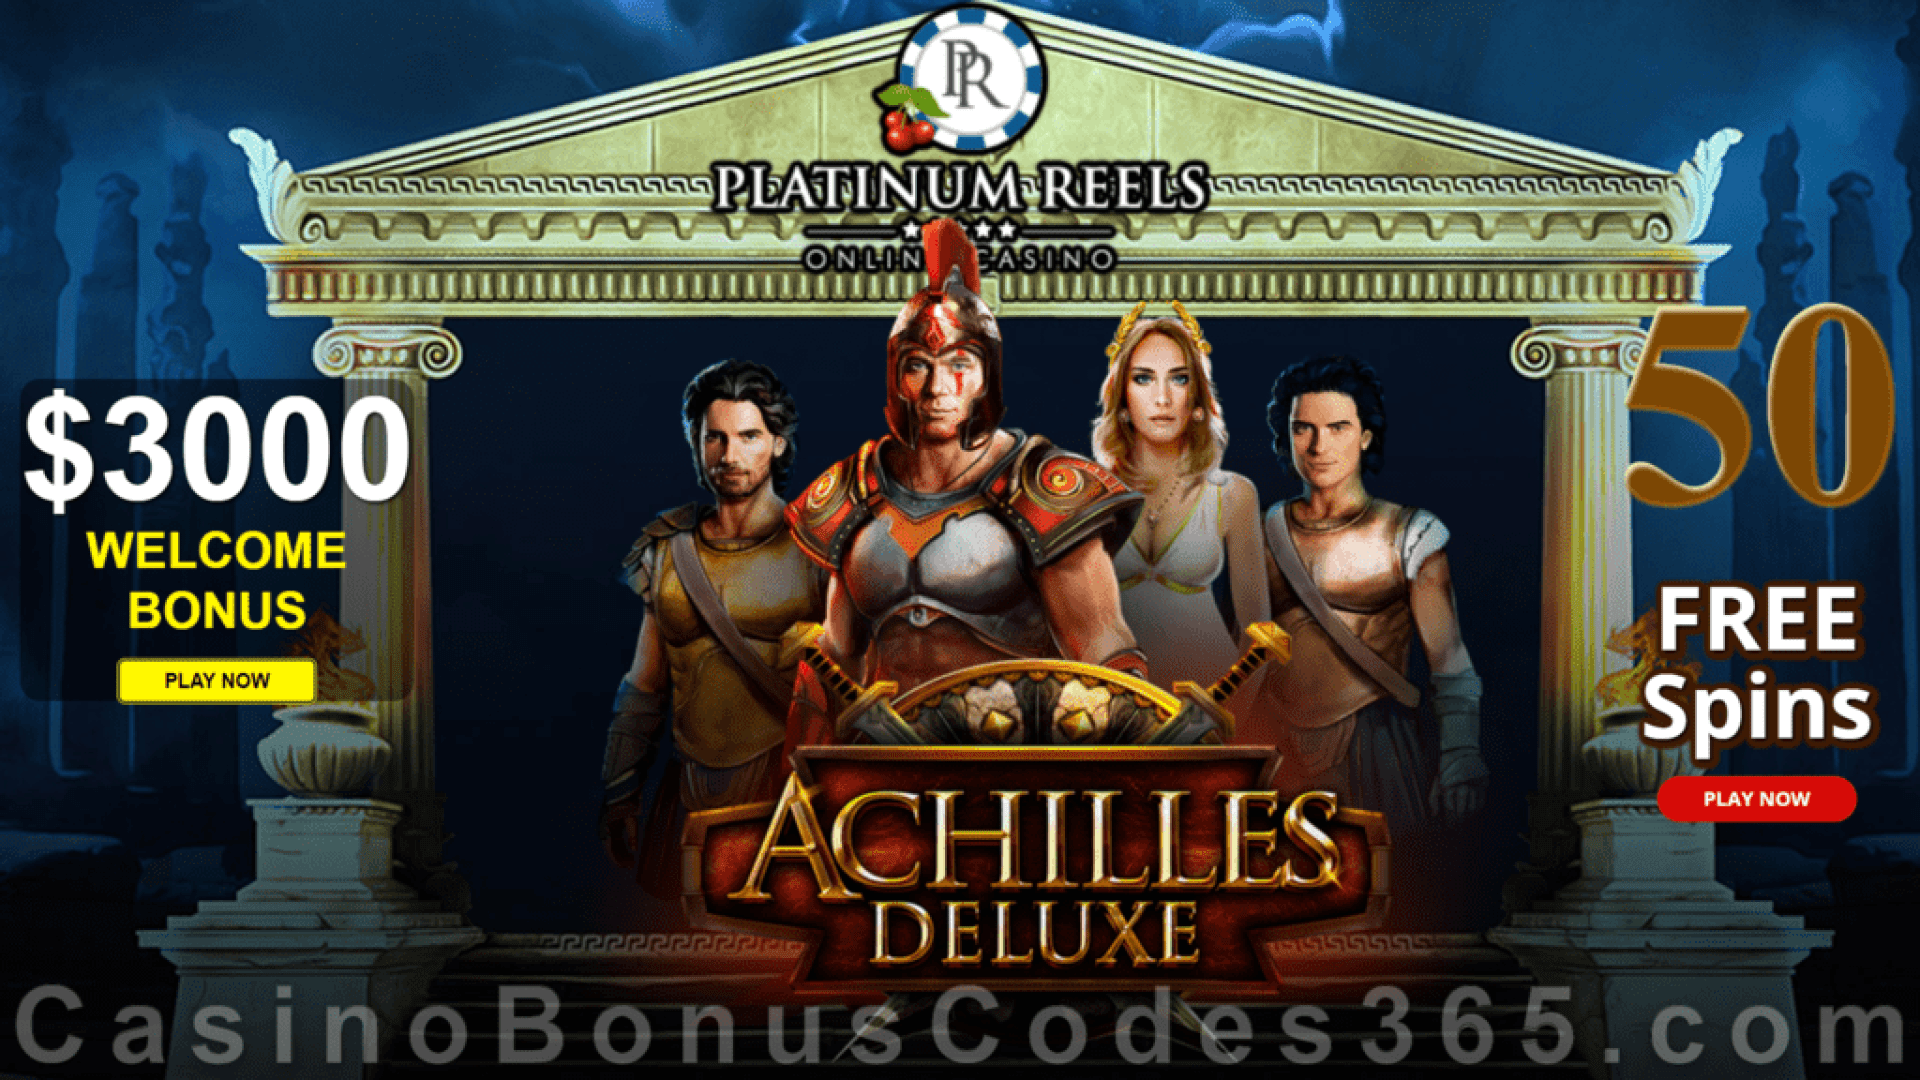 Platinum Reels 50 FREE Spins on Achilles Deluxe New RTG Game Special Deal